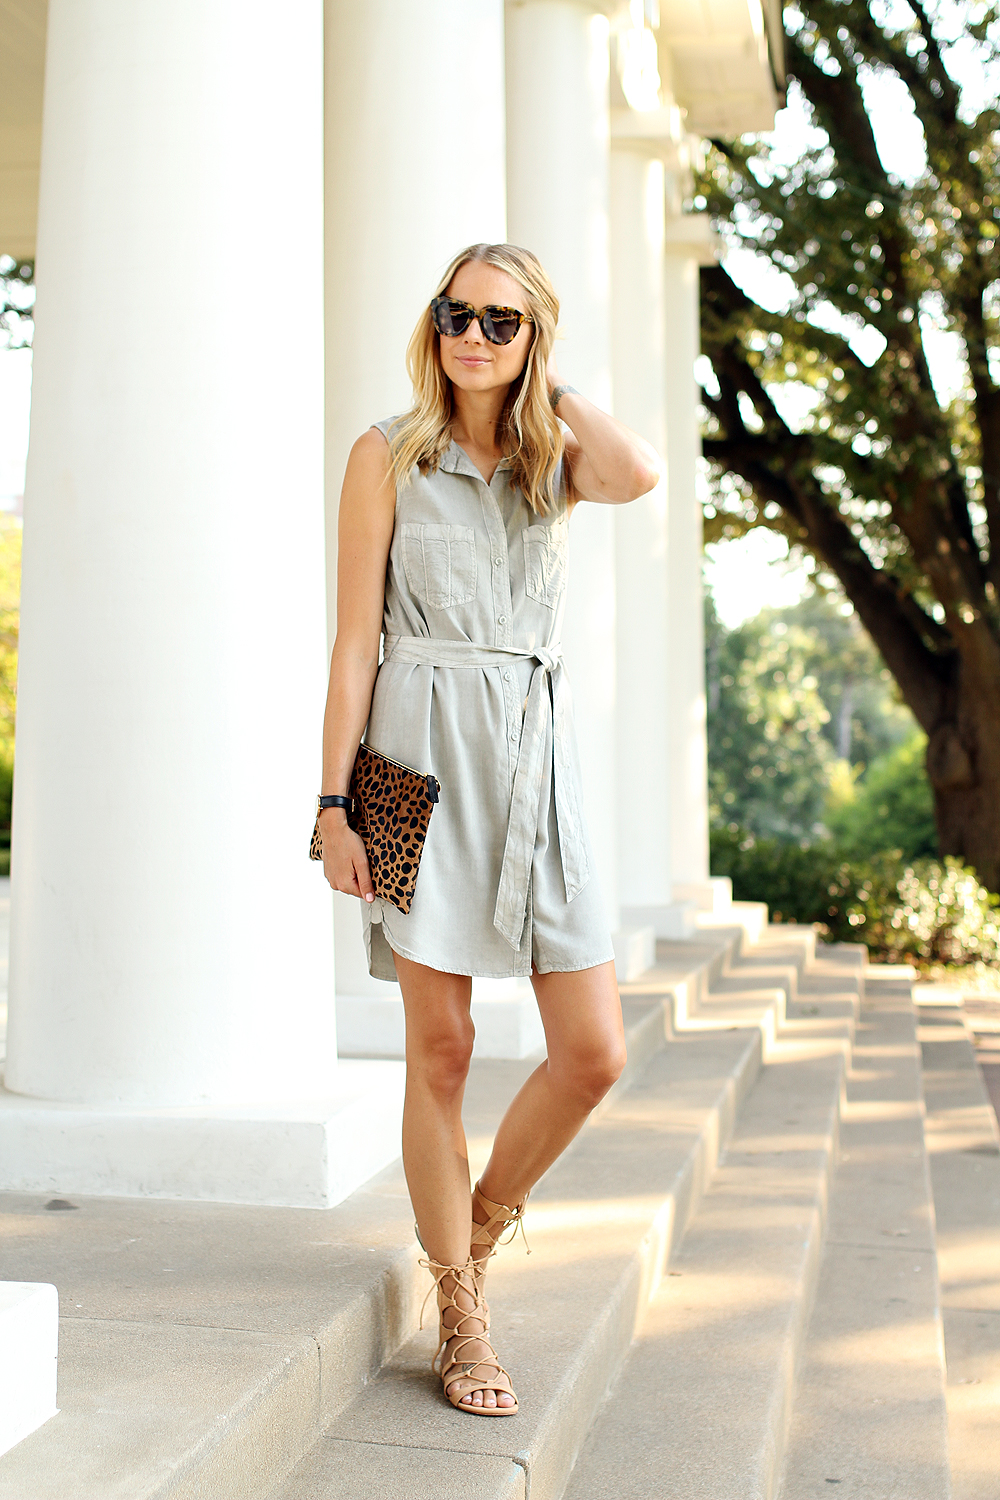 fashion-jackson-sleeveless-tencel-shirt-dress-schutz-lina-lace-up-gladiators-clare-v-leopard-clutch-karen-walker-number-one-sunglasses